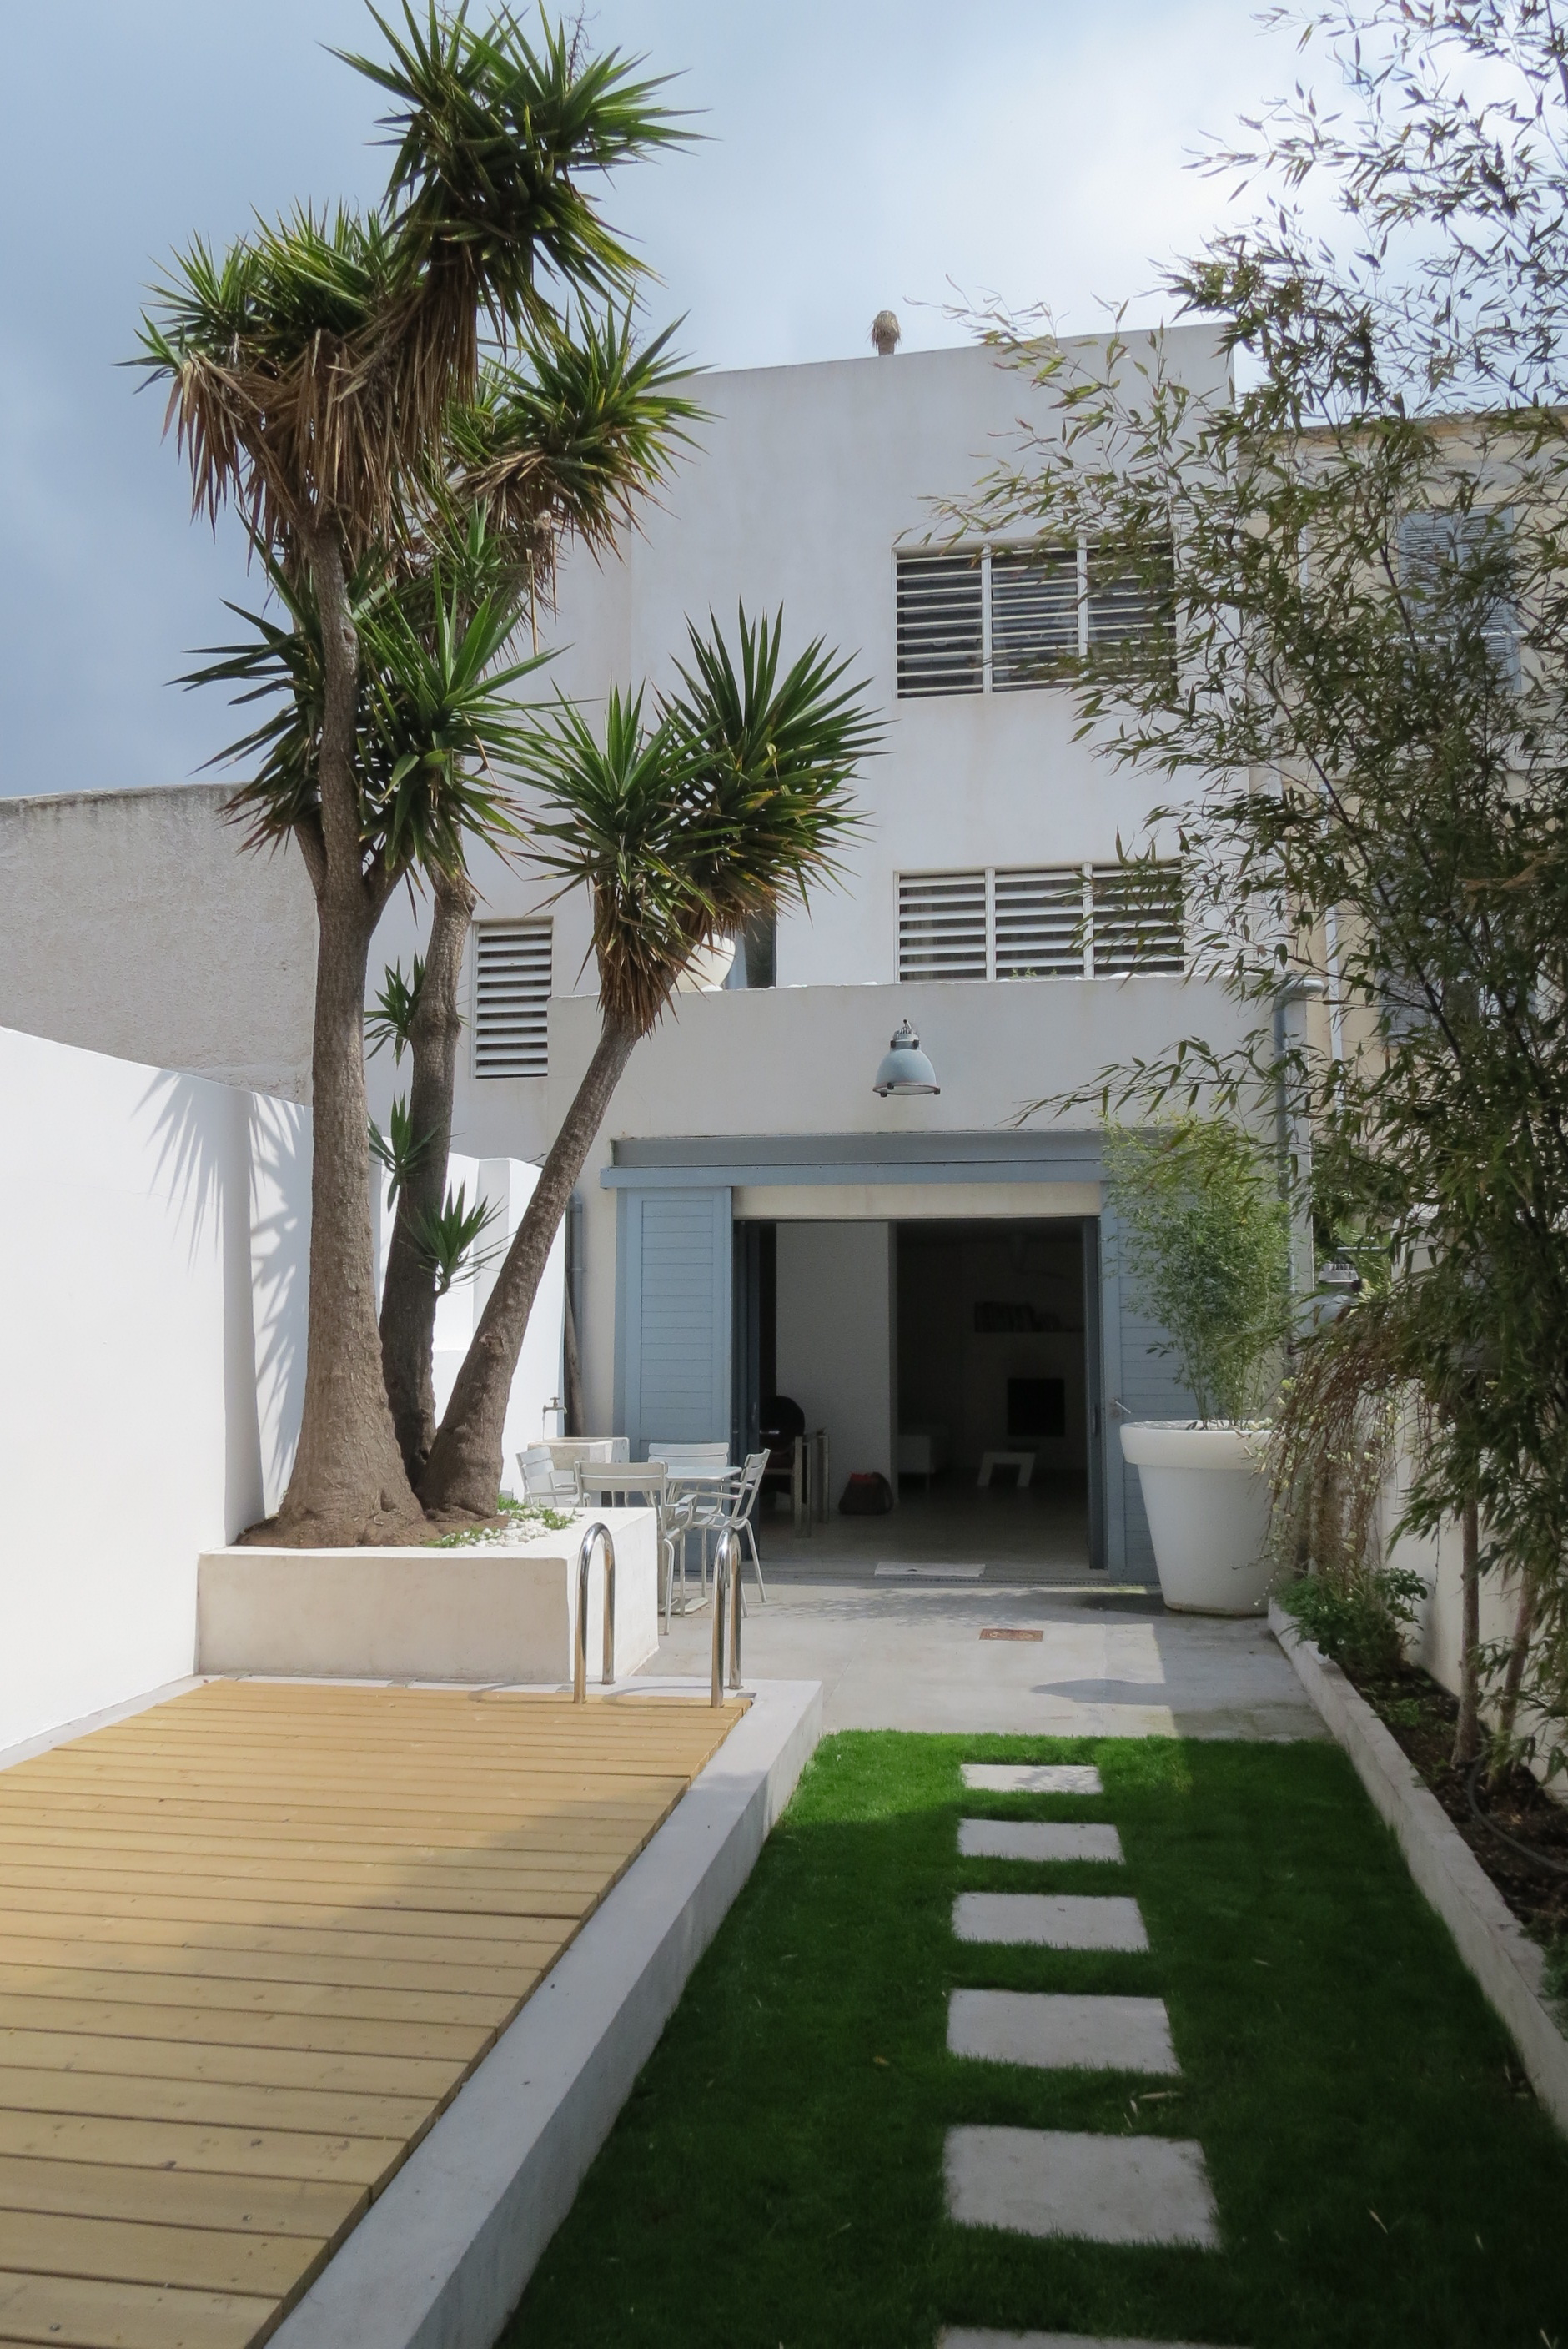 Vente t5 f5 marseille 7eme contemporaine piscine agence - Amenagement piscine contemporaine marseille ...